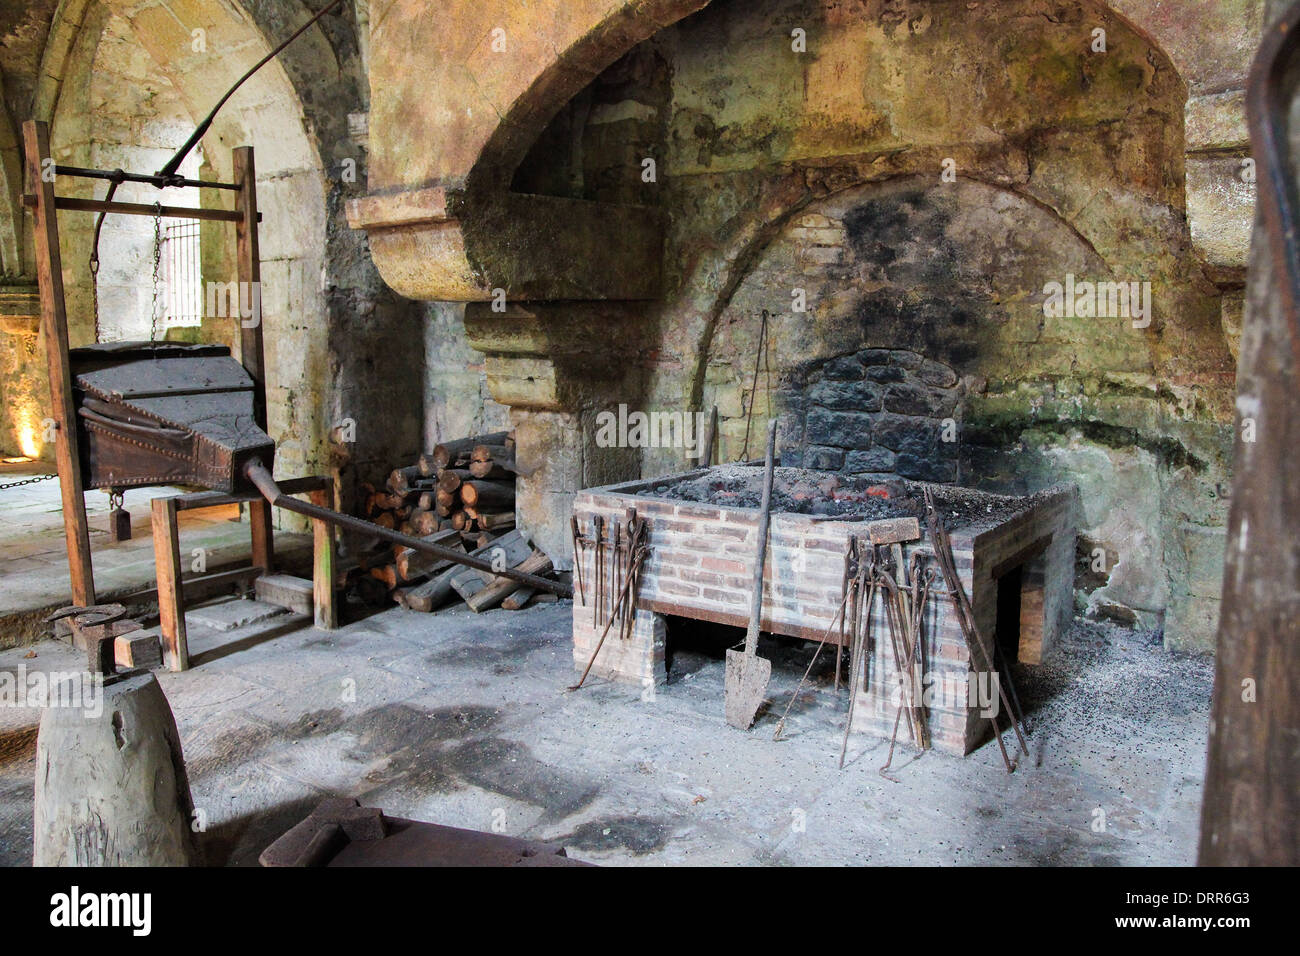 Medieval stone fireplace in the Abbey of Fontenay, Burgundy, France. Stock Photo